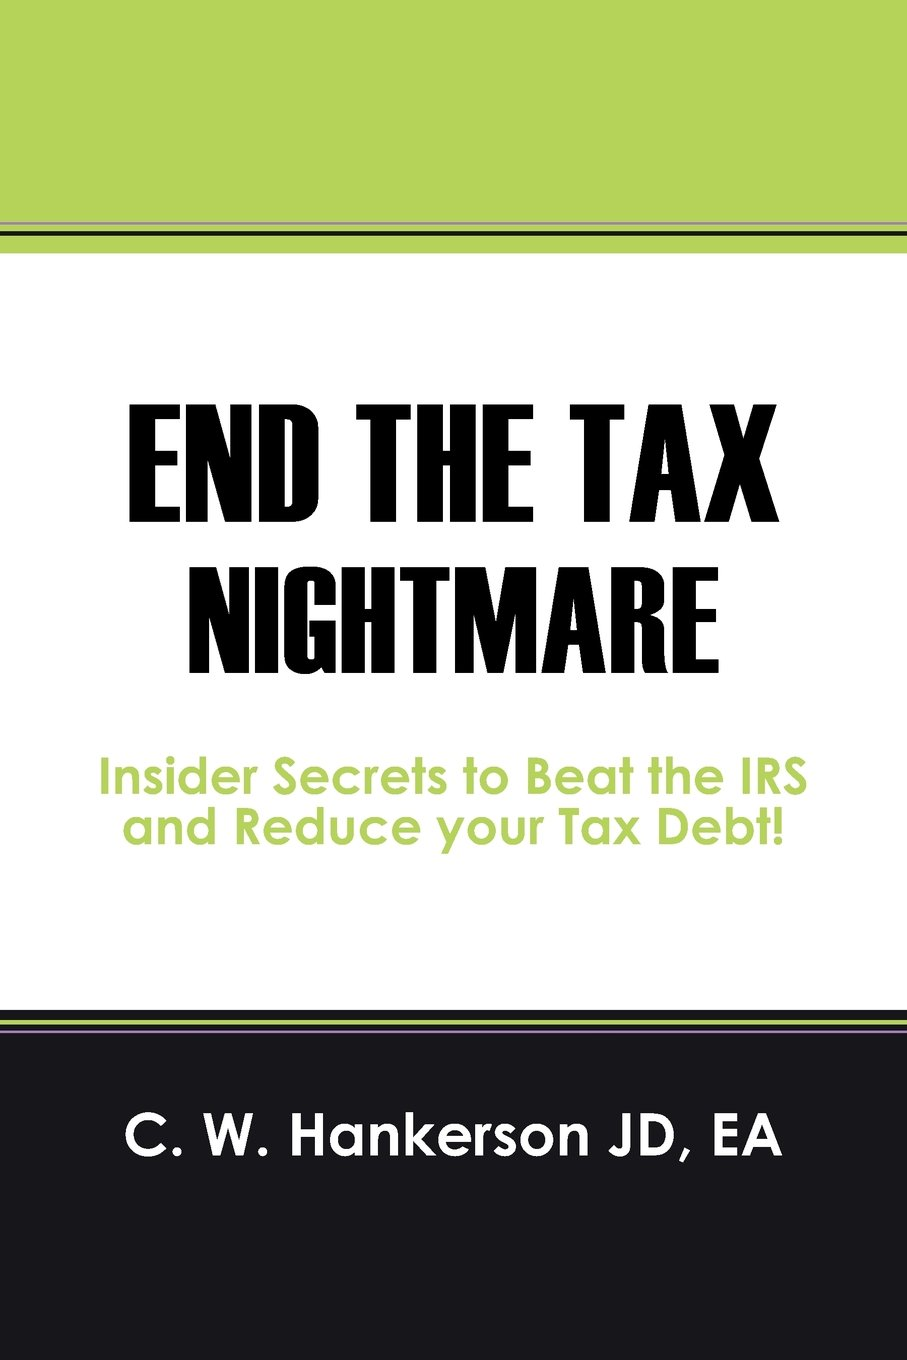 End the Tax Nightmare: Insider Secrets to Beat the IRS and Reduce your Tax  Debt!: C. W. Hankerson: 9781432794262: Amazon.com: Books